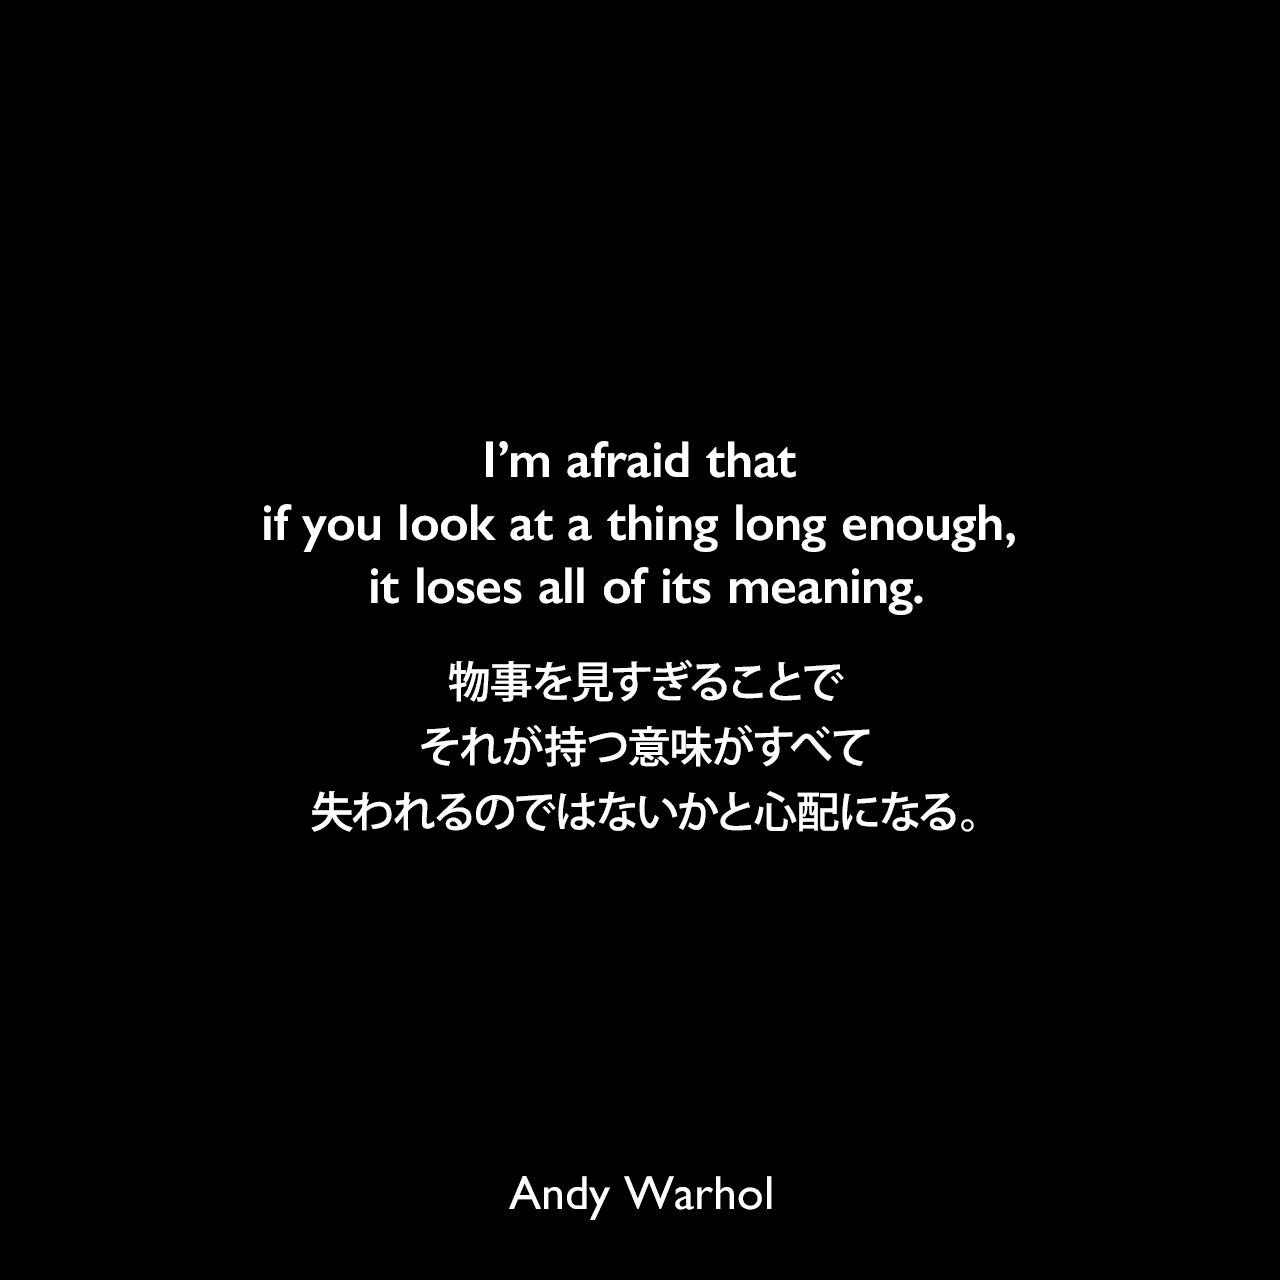 I'm afraid that if you look at a thing long enough, it loses all of its meaning.物事を見すぎることで、それが持つ意味がすべて失われるのではないかと心配になる。Andy Warhol